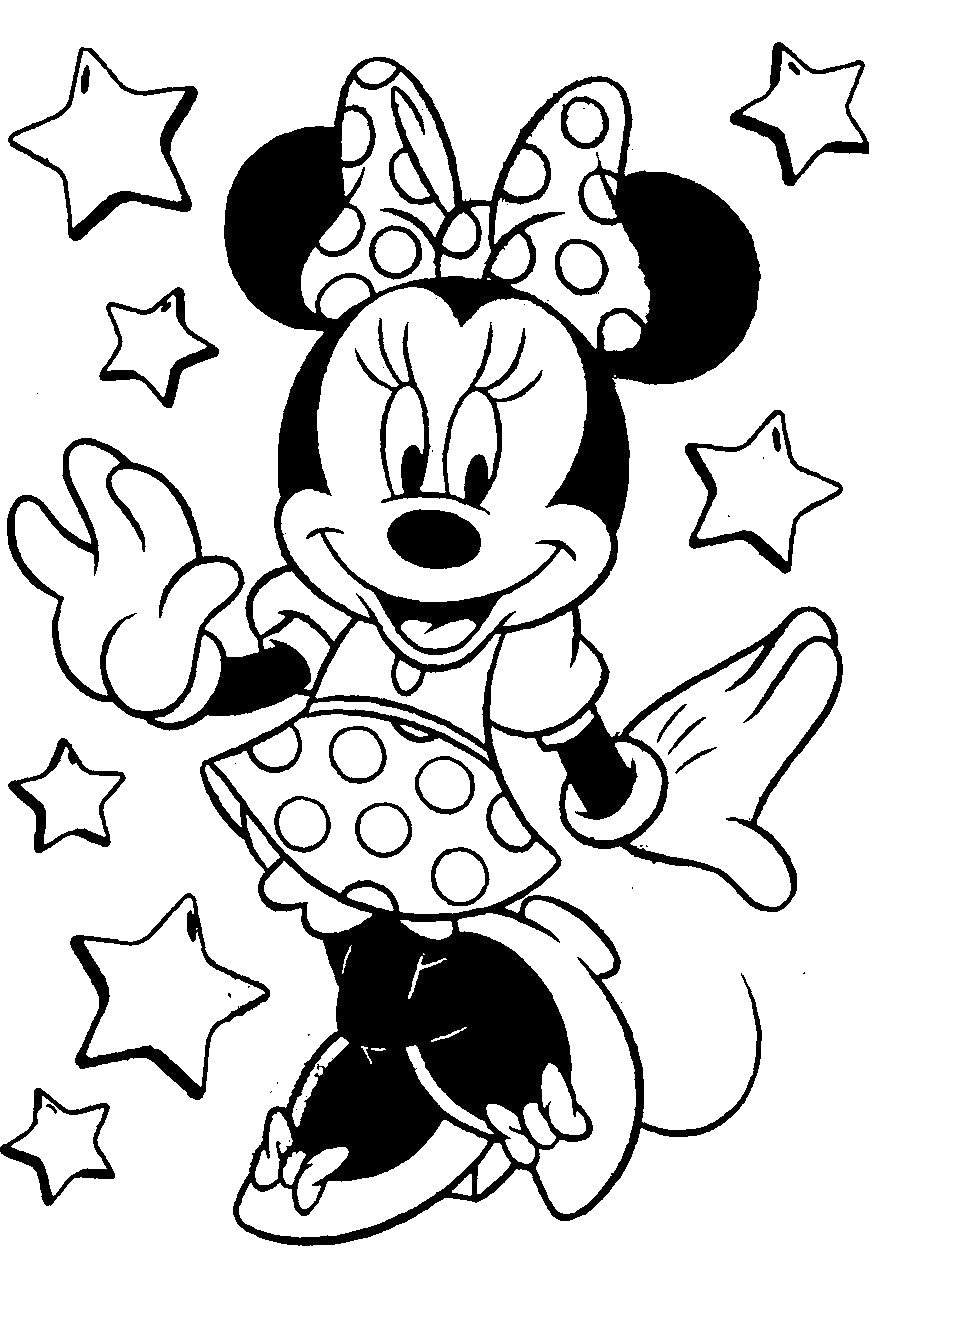 - 21+ Elegant Image Of Mickey Mouse Coloring Pages - Birijus.com